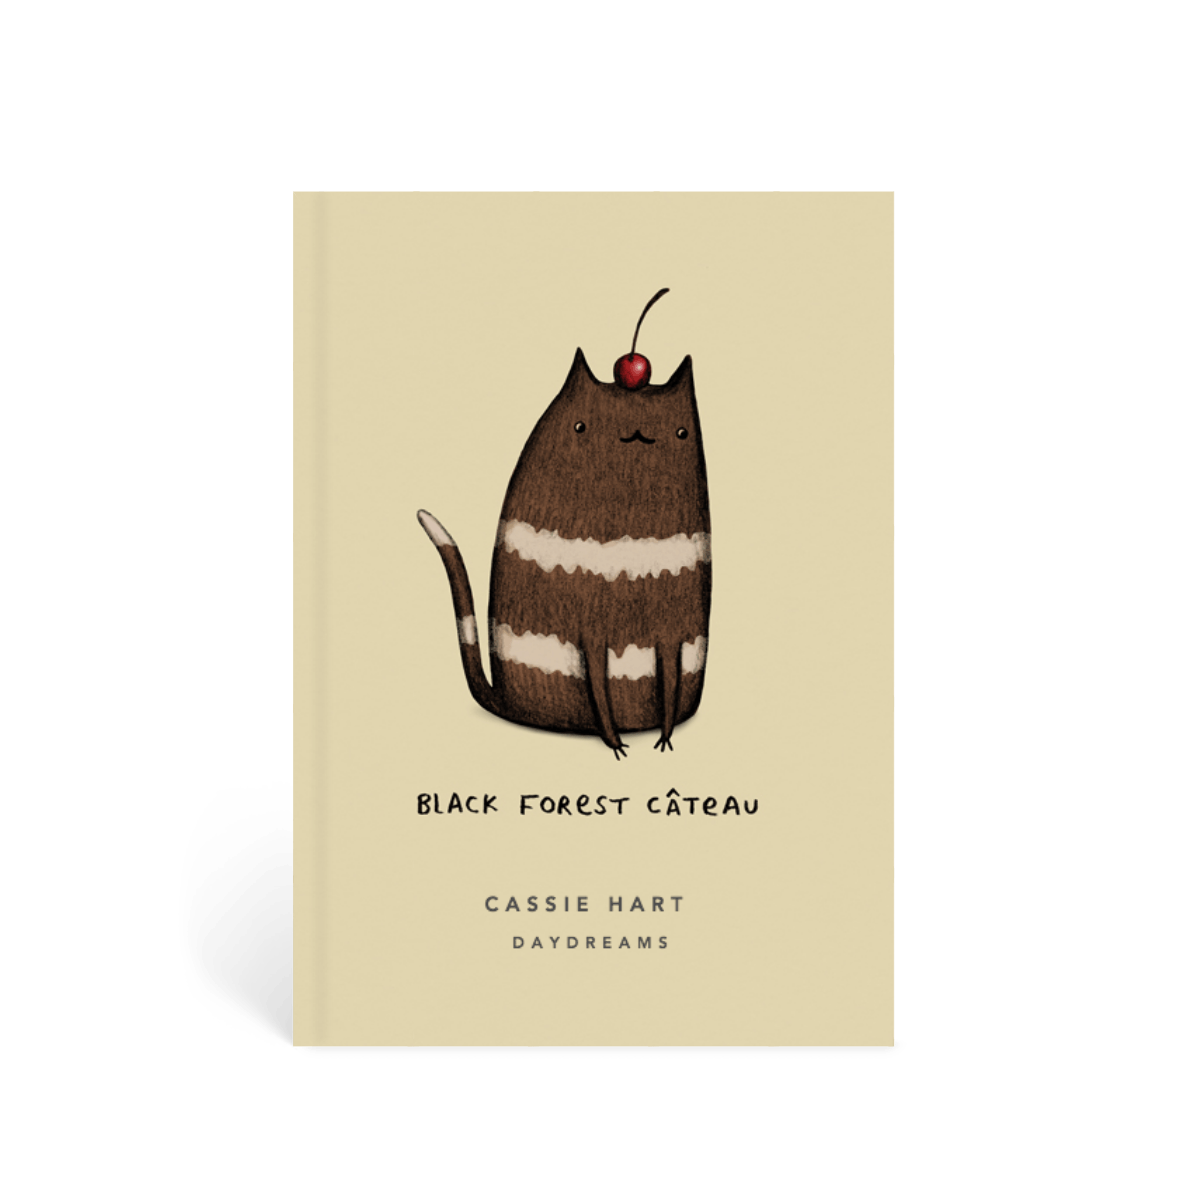 Https%3a%2f%2fwww.papier.com%2fproduct image%2f51064%2f25%2fblack forest cateau 12507 front 1540293692.png?ixlib=rb 1.1